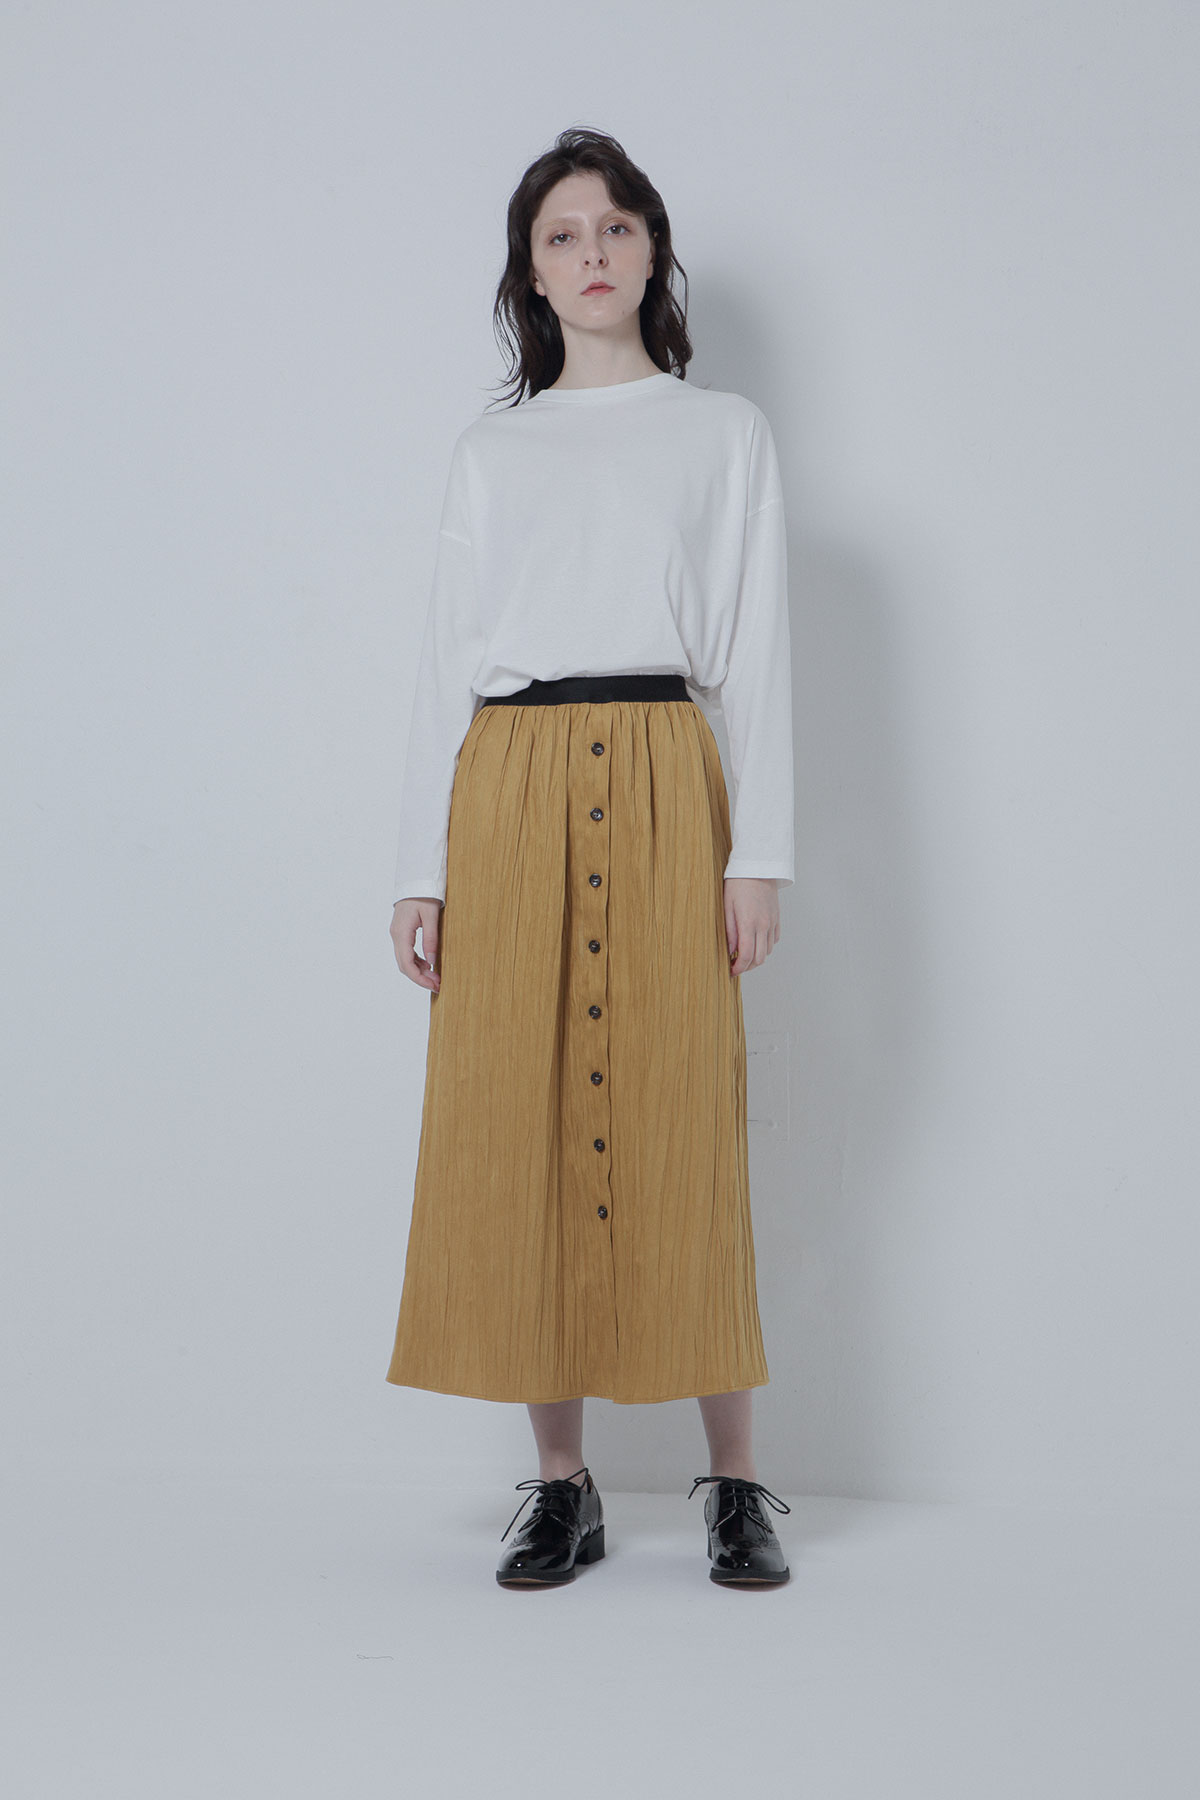 BO205402-yellow Sustainable Wrinkle Suede Roma Skirt -YELLOW-【BO205402】Del. Oct.